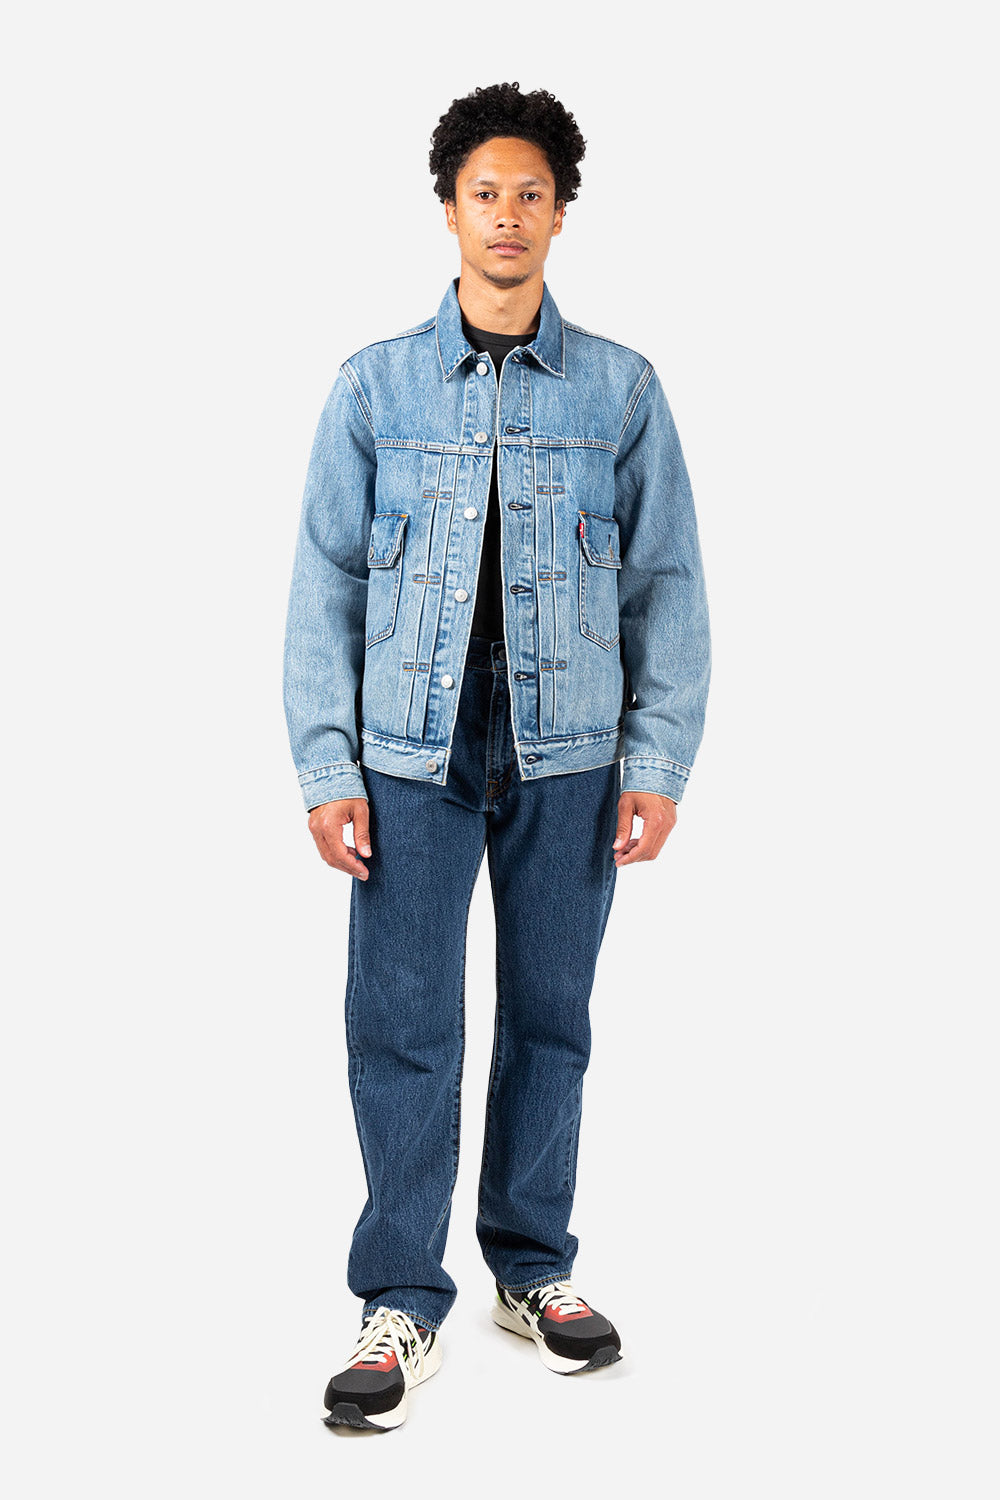 Levis-contemporary-type-2-trucker-jacket-seen-the-light